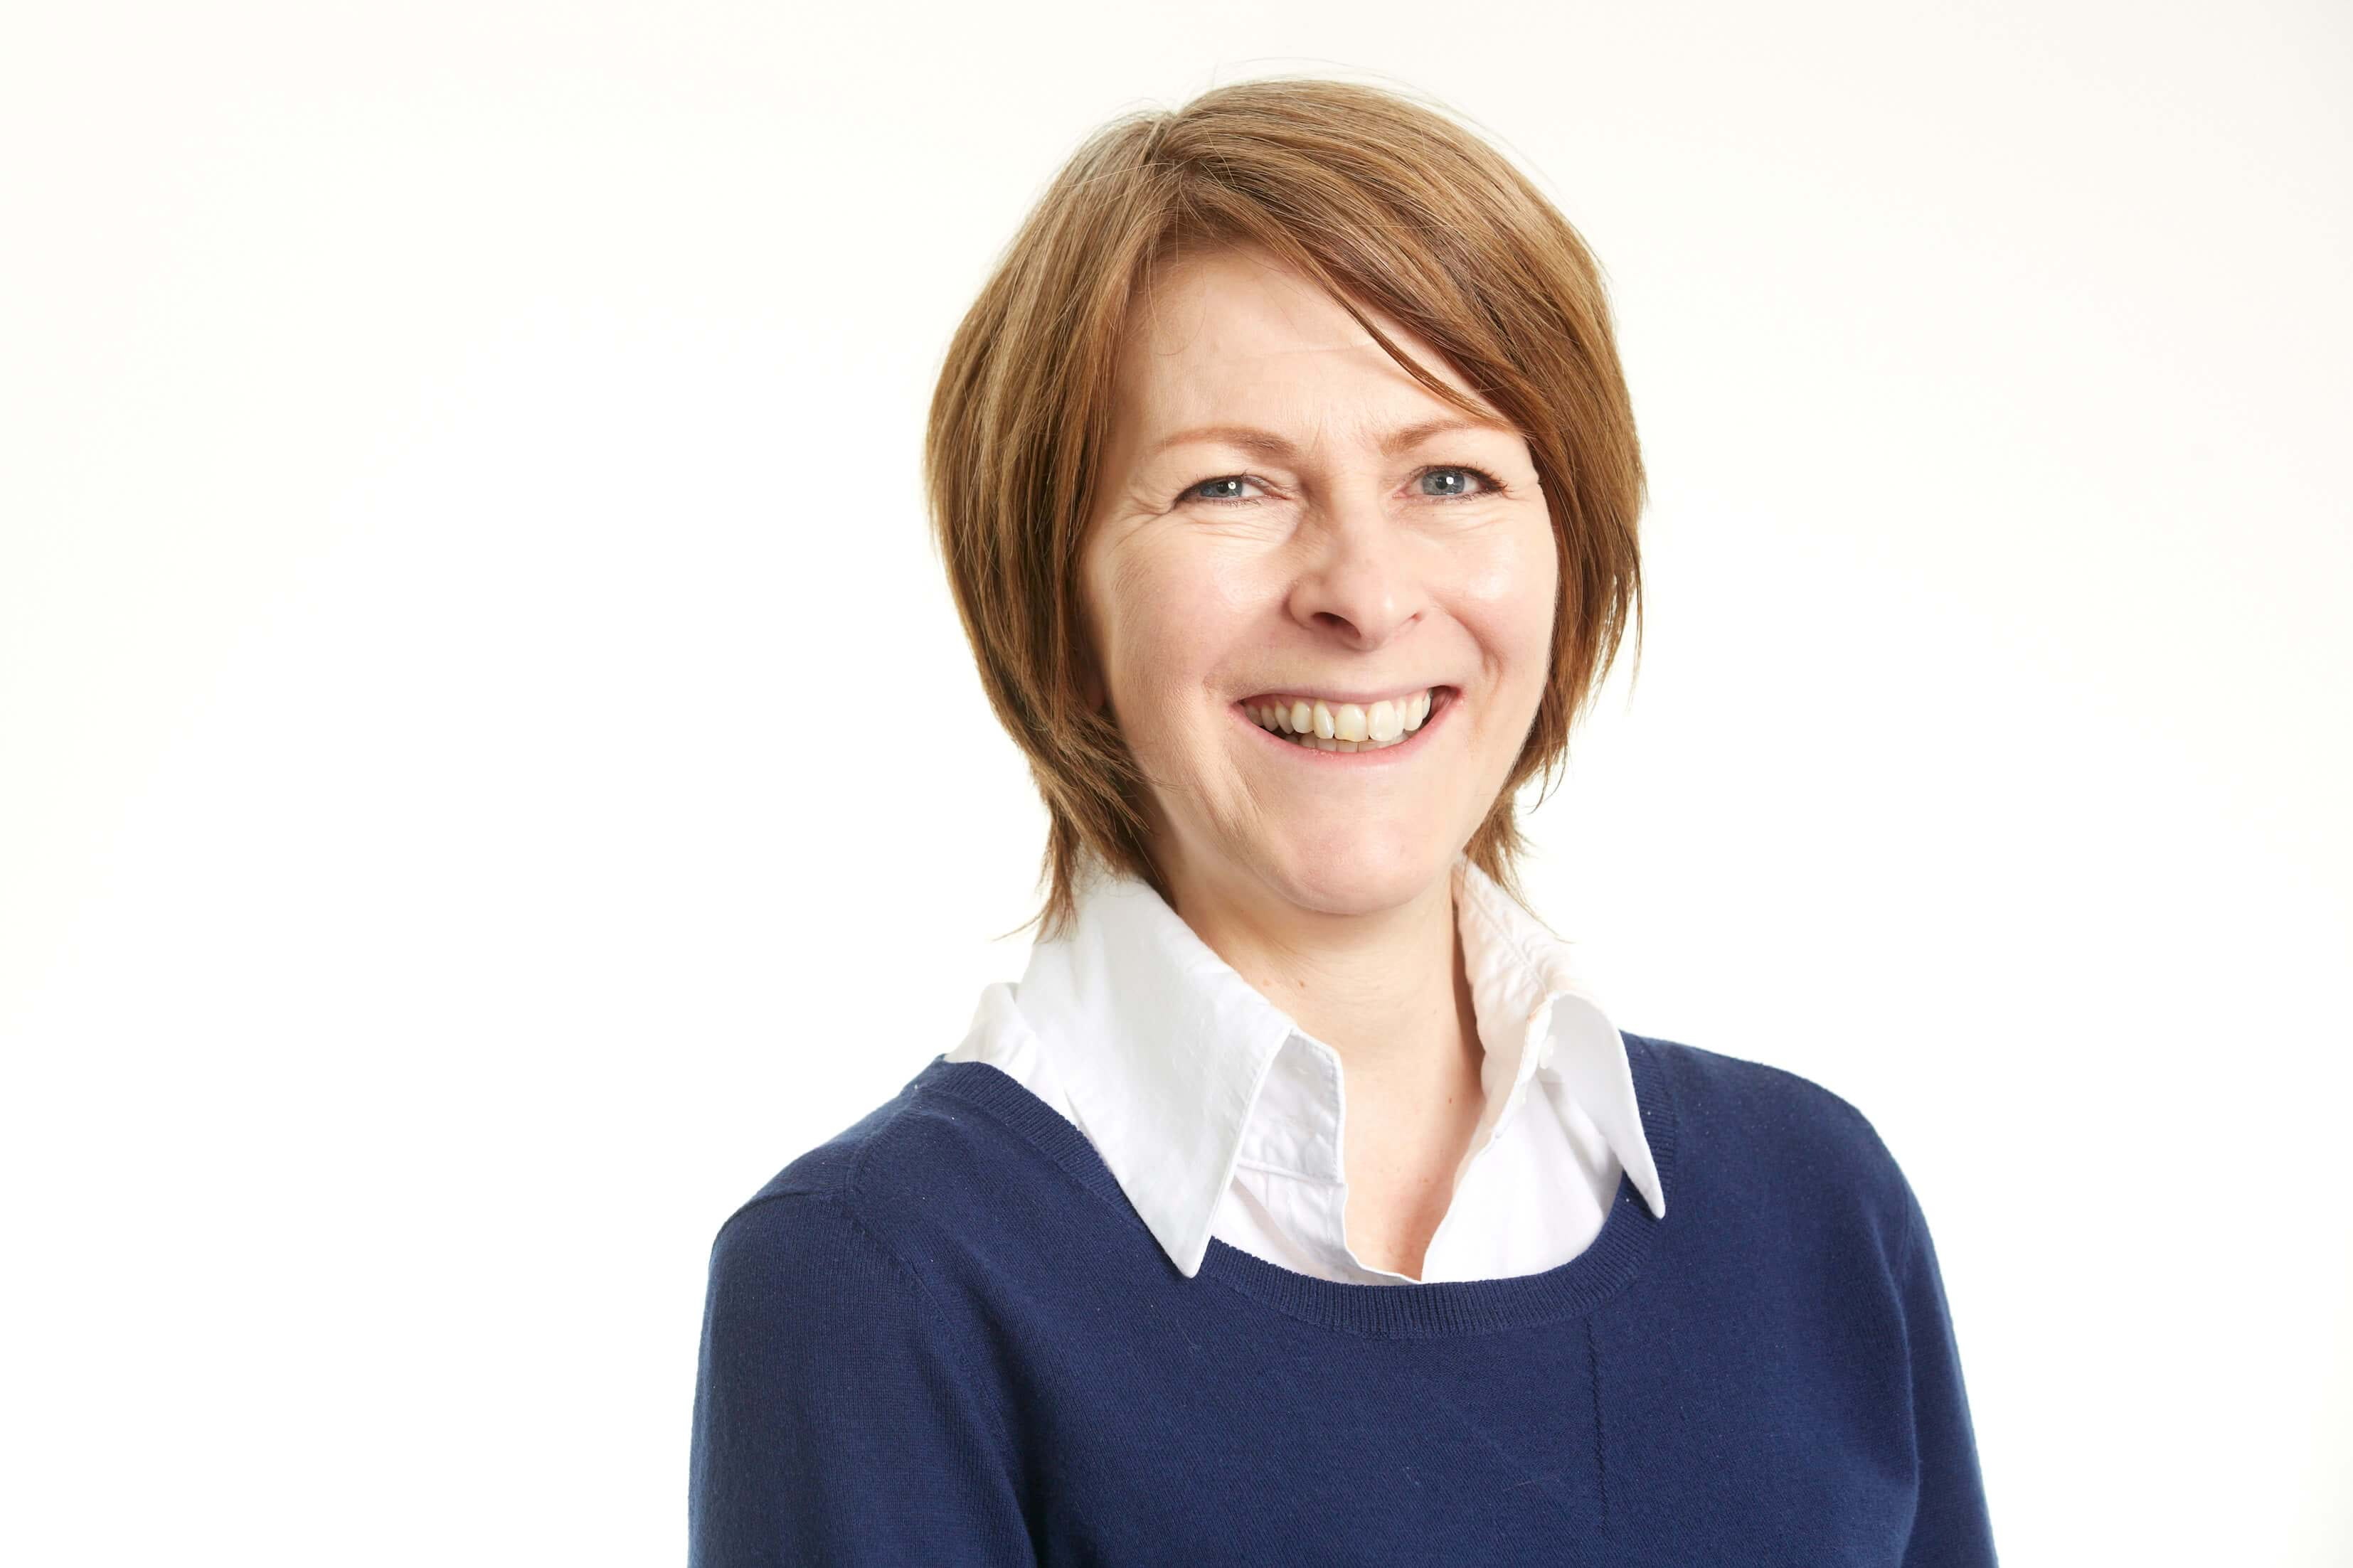 A profile of Jo Seery, Professional Support lawyer for Thompsons Solicitors, based in Manchester